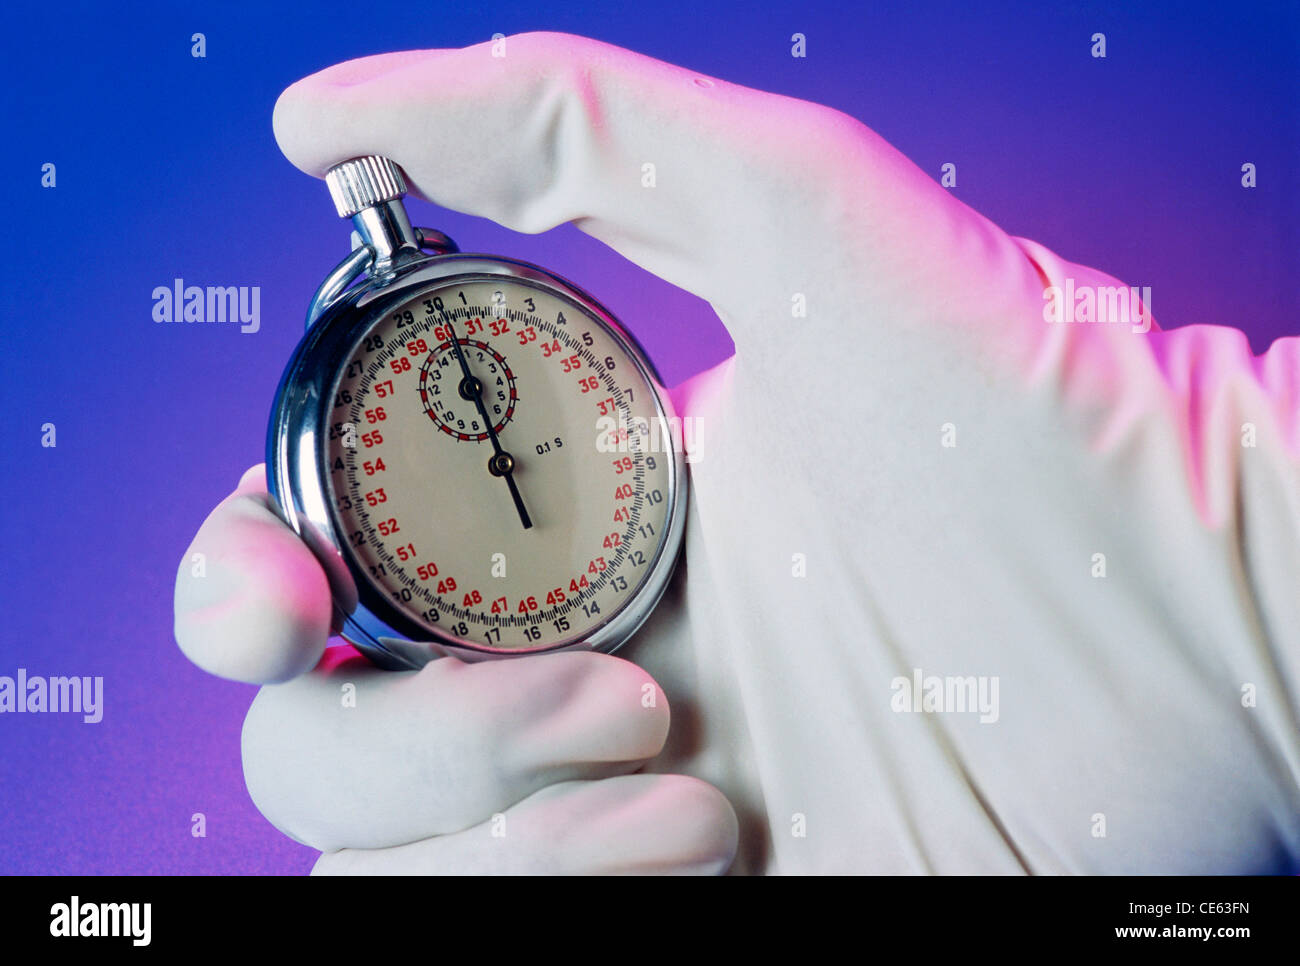 Hand wearing white glove holding stopwatch timer - Stock Image